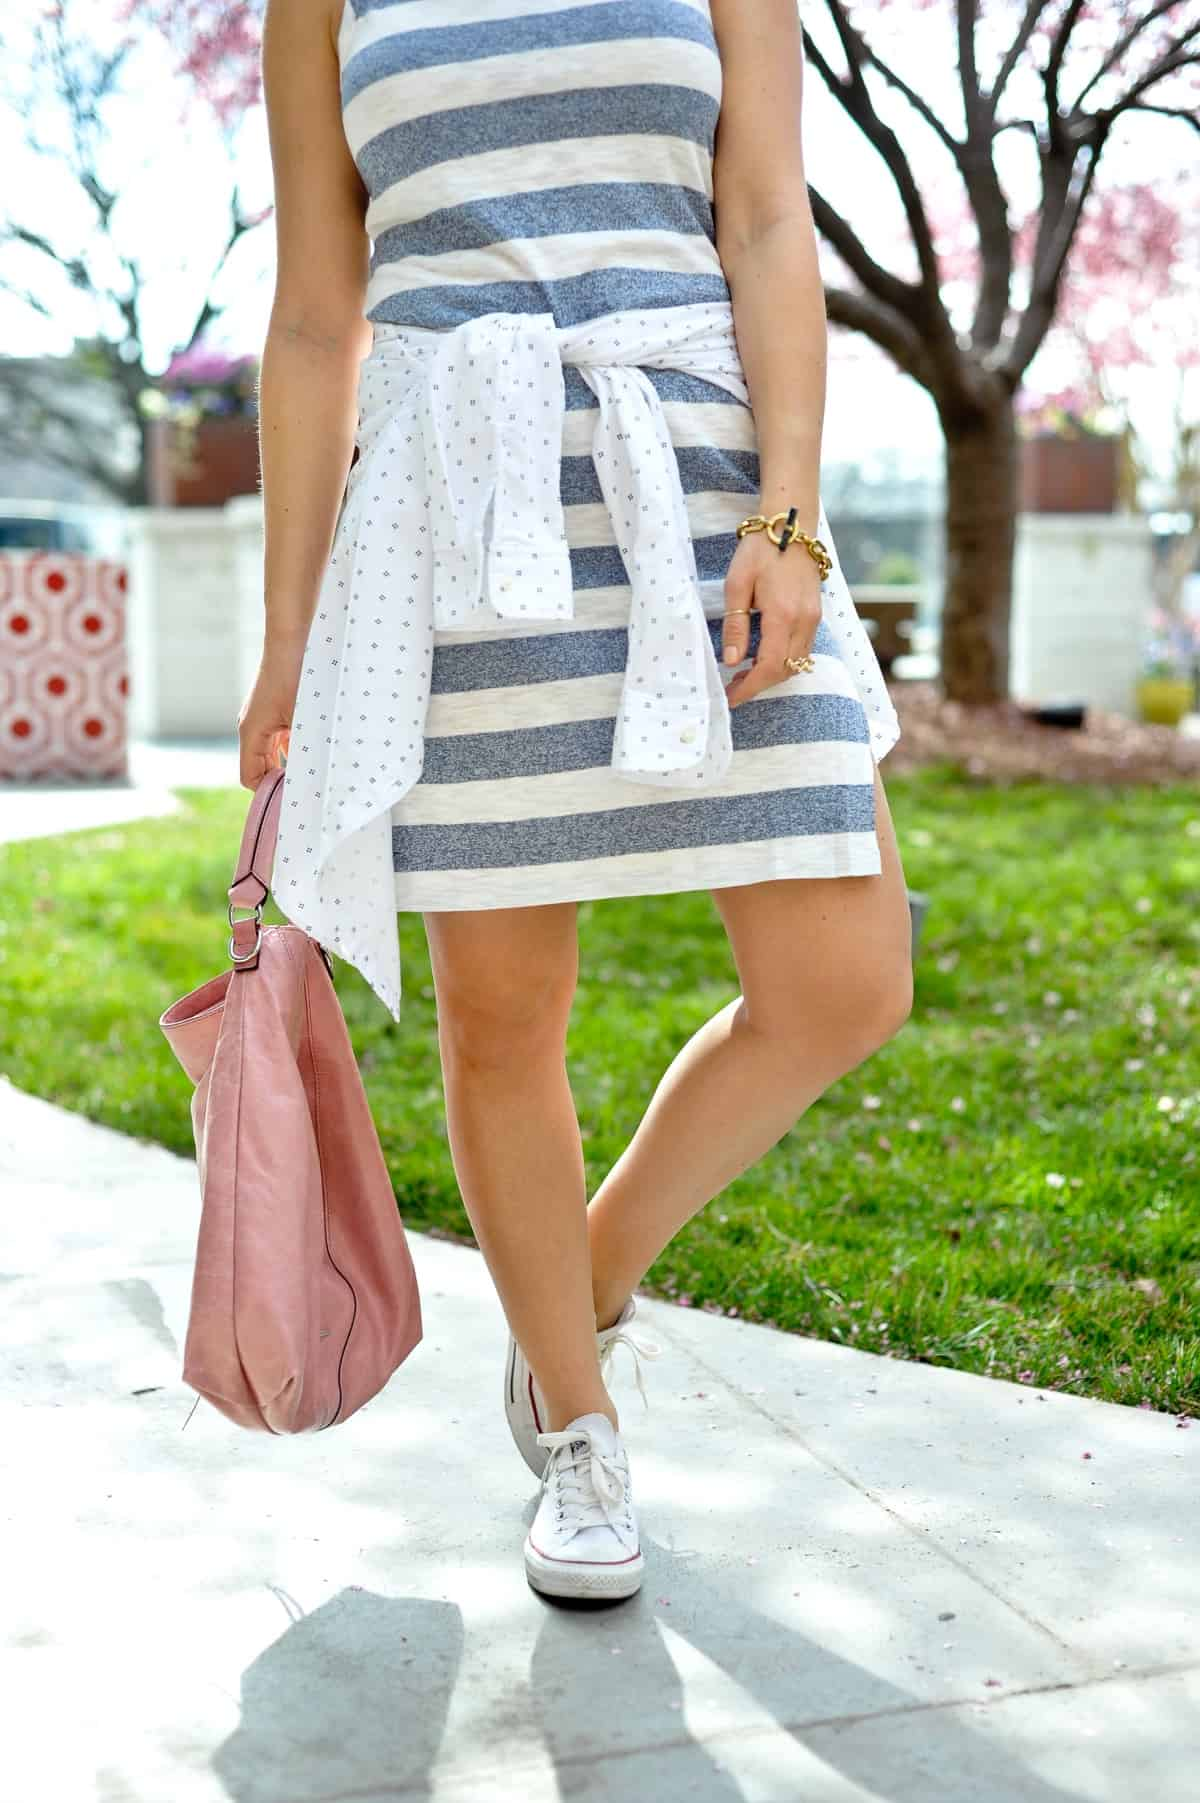 Striped blue and white dress with converse